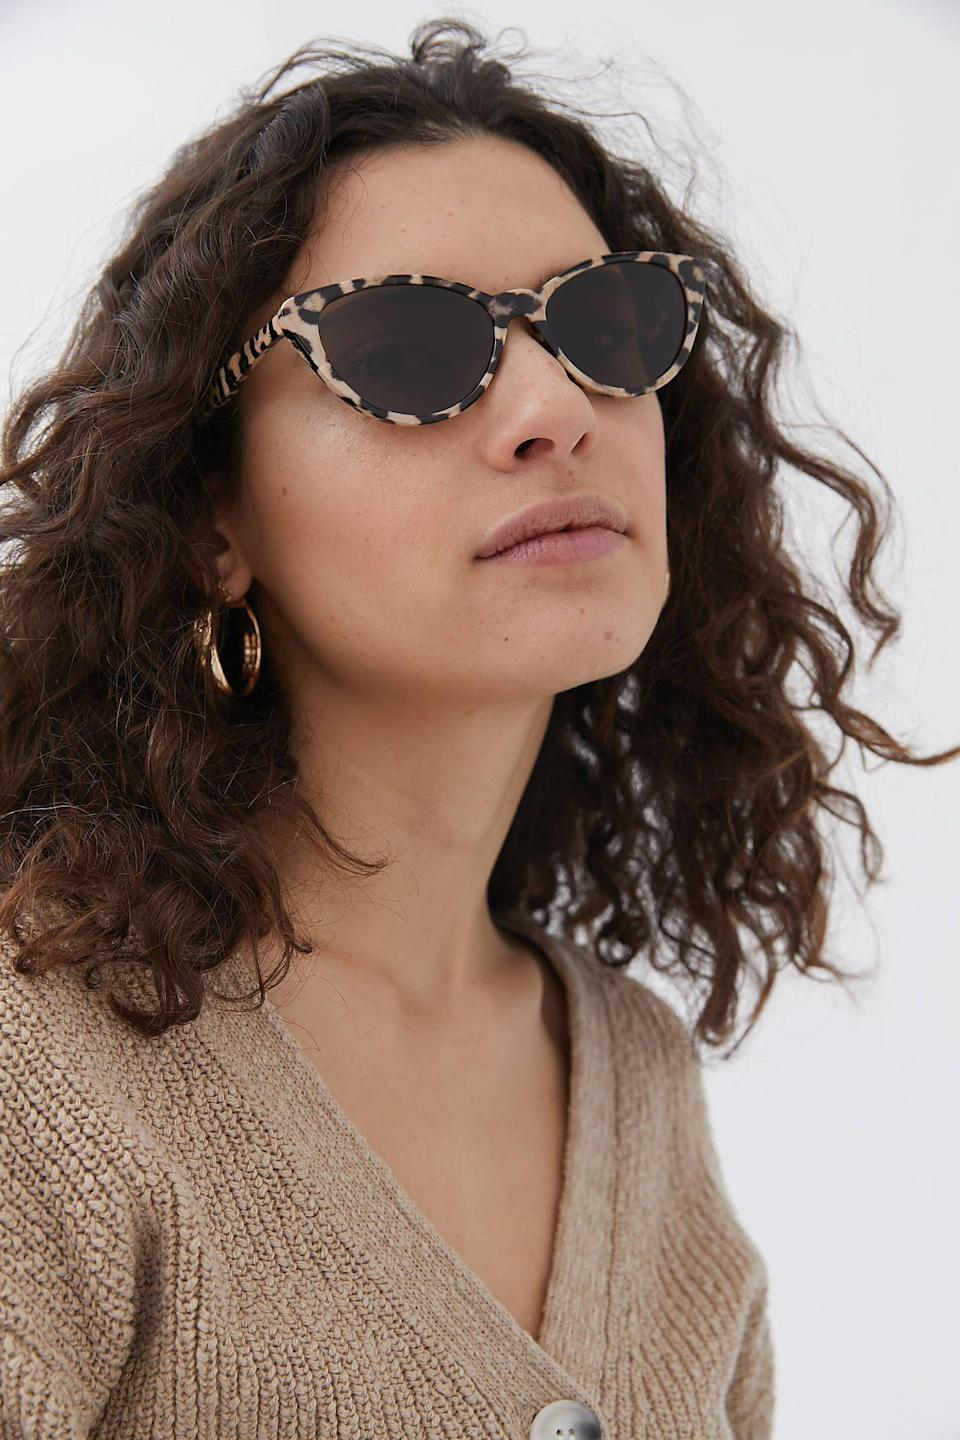 """<p><strong>Urban Outfitters</strong></p><p>urbanoutfitters.com</p><p><strong>$16.00</strong></p><p><a href=""""https://go.redirectingat.com?id=74968X1596630&url=https%3A%2F%2Fwww.urbanoutfitters.com%2Fshop%2Fcalistoga-cat-eye-sunglasses&sref=https%3A%2F%2Fwww.thepioneerwoman.com%2Ffashion-style%2Fg36003005%2Fbest-cat-eye-sunglasses%2F"""" rel=""""nofollow noopener"""" target=""""_blank"""" data-ylk=""""slk:Shop Now"""" class=""""link rapid-noclick-resp"""">Shop Now</a></p><p>Reviewers rave about the narrow fit of these glasses for smaller faces. And you can't go wrong with this classic pattern!</p>"""